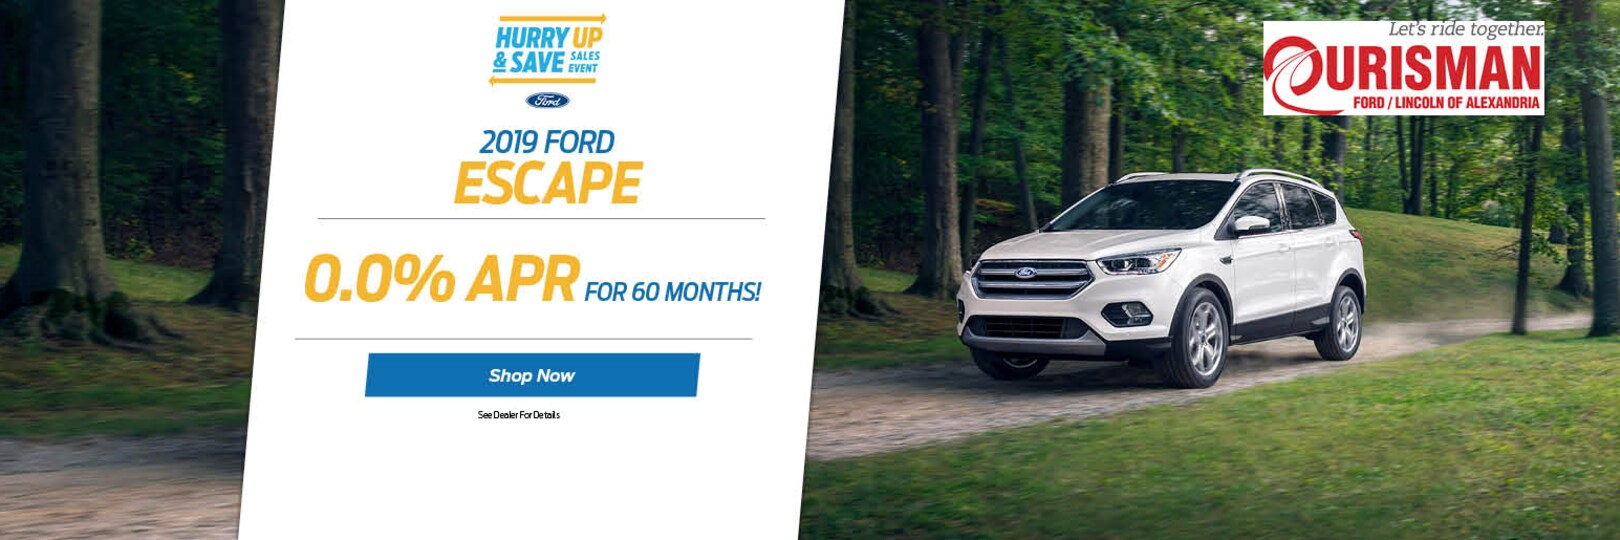 Ourisman Ford & Lincoln: New 2019 & 2020 Ford Dealership Alexandria